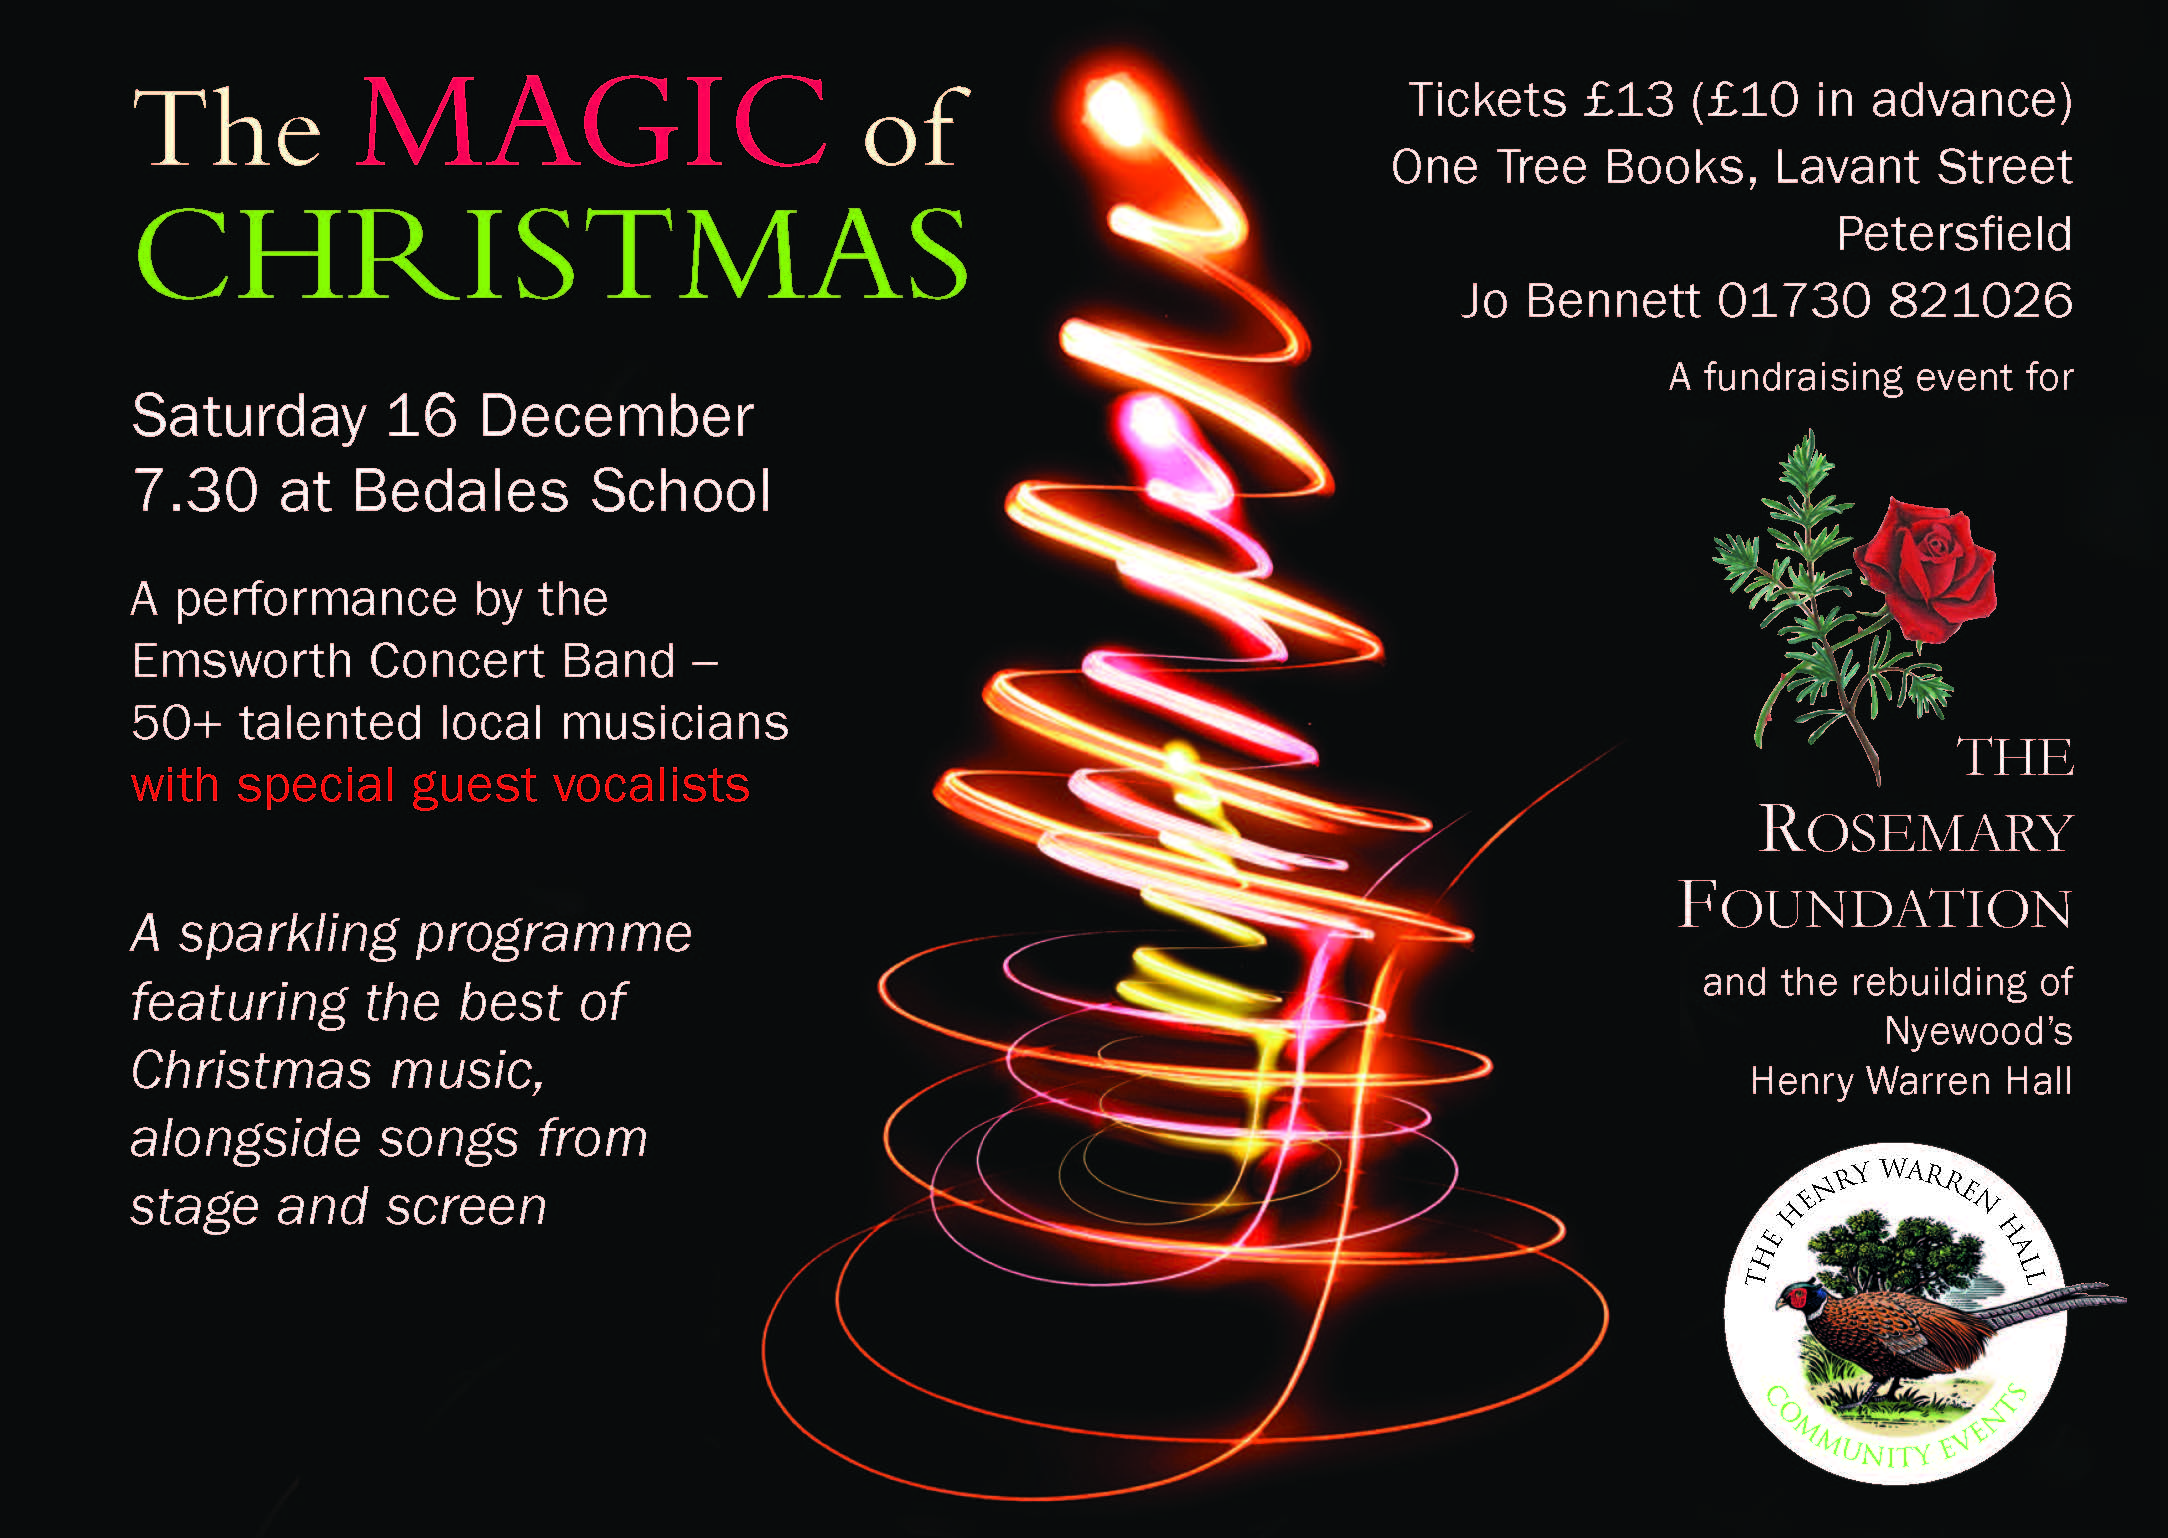 The Emsworth Concert Band Magic of Christmas concert - The Rosemary  Foundation